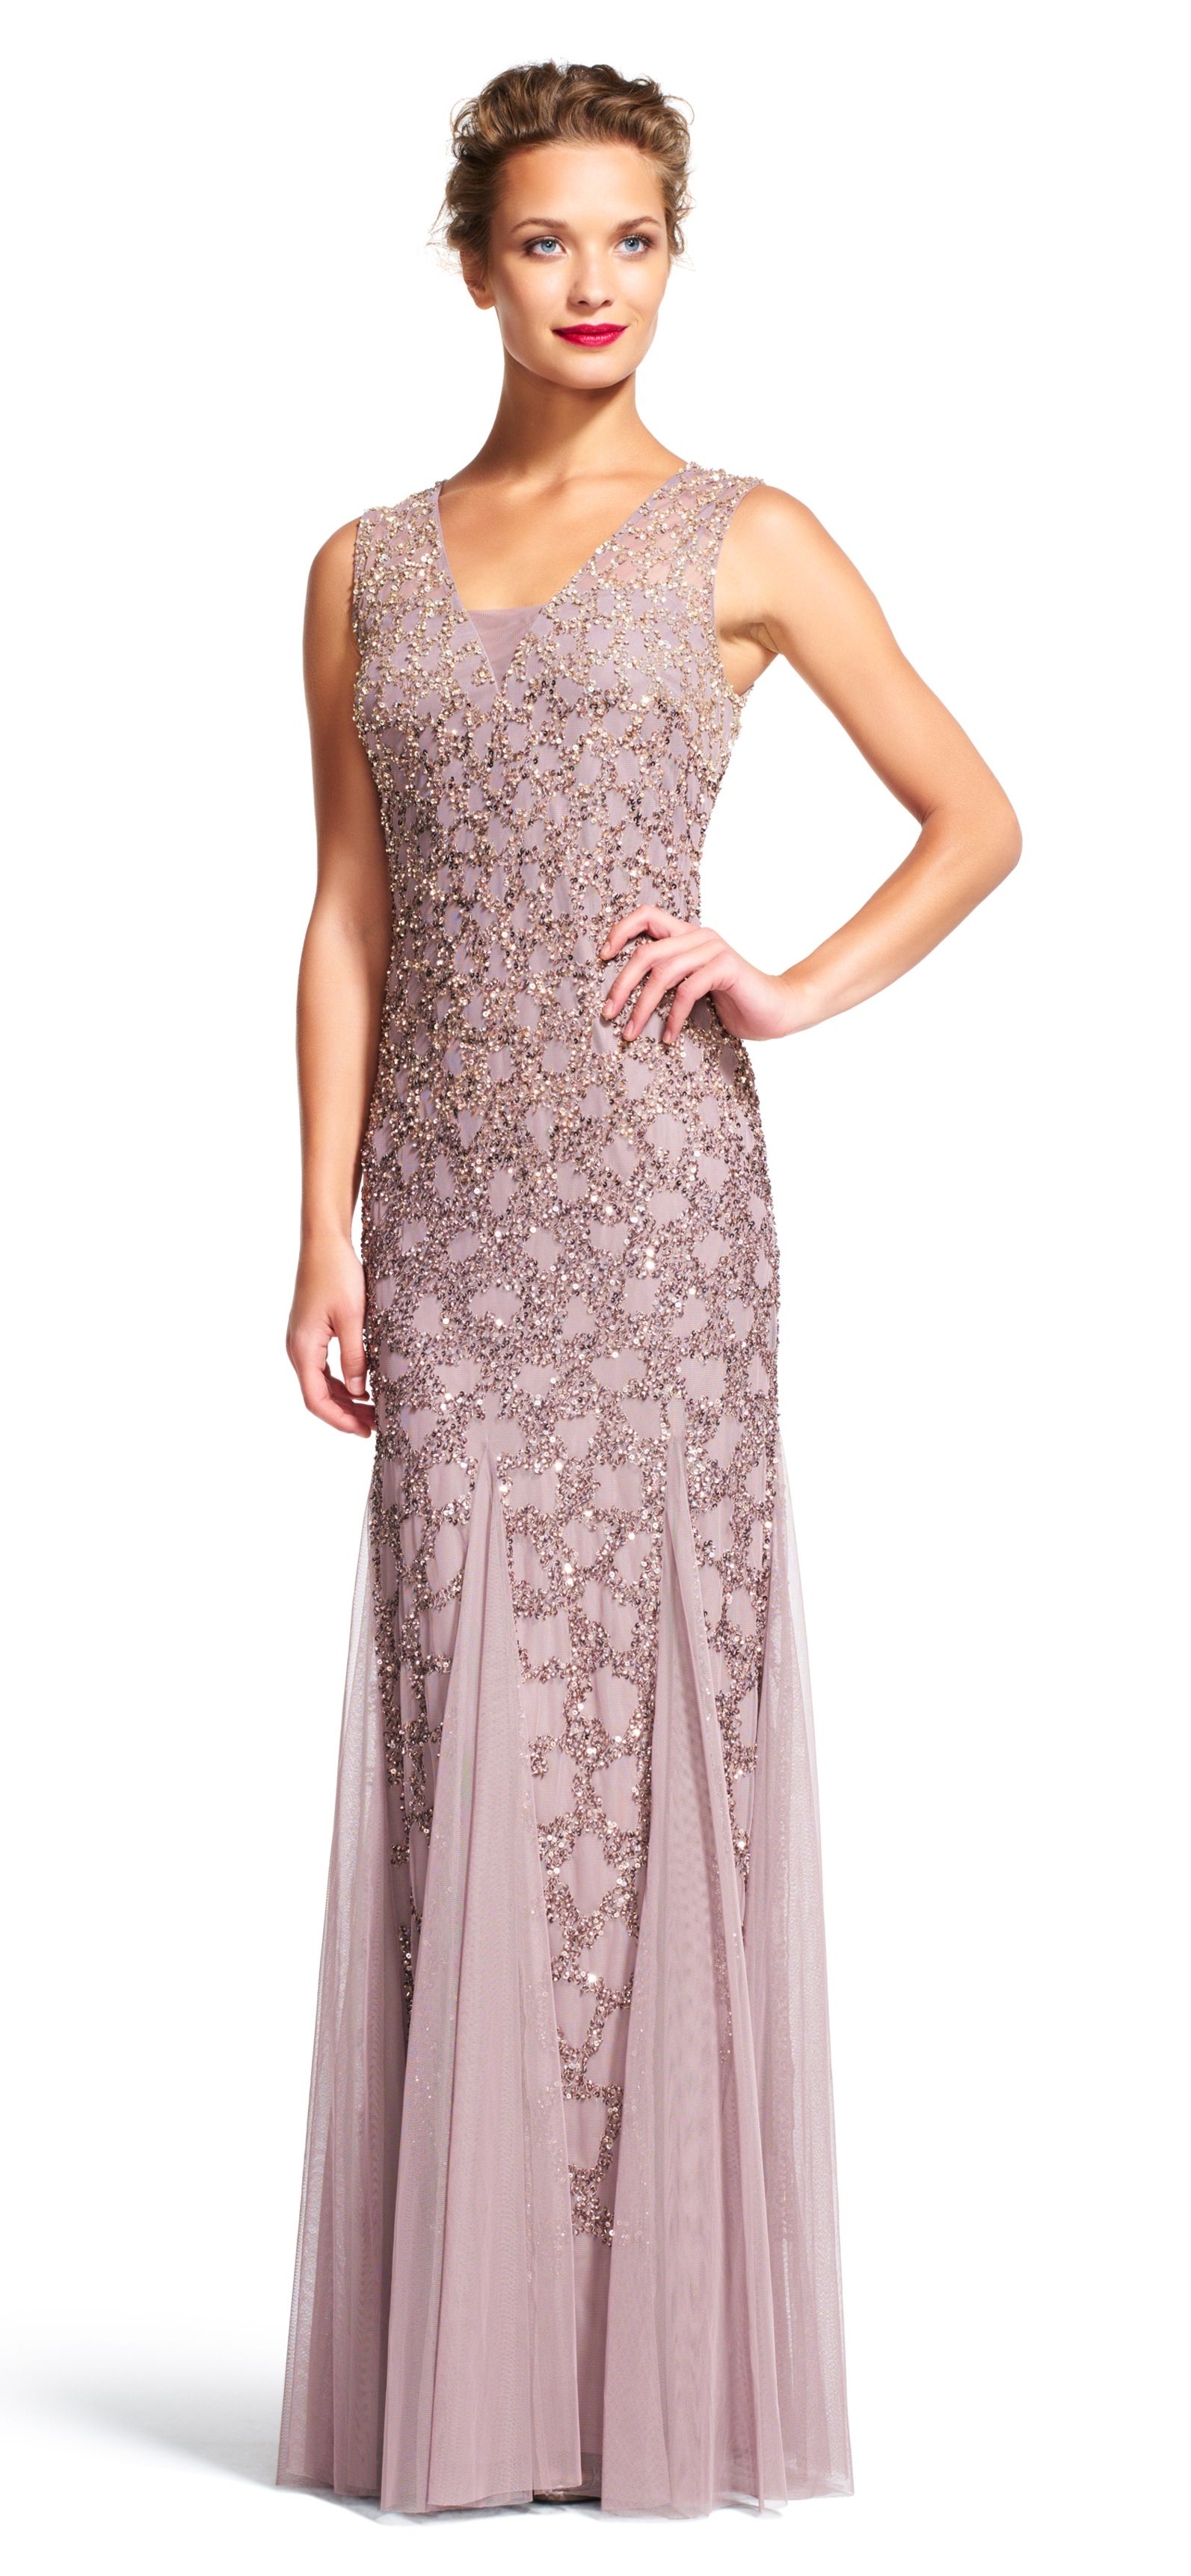 Scale beaded godet gown with sheer neckline illusion neckline